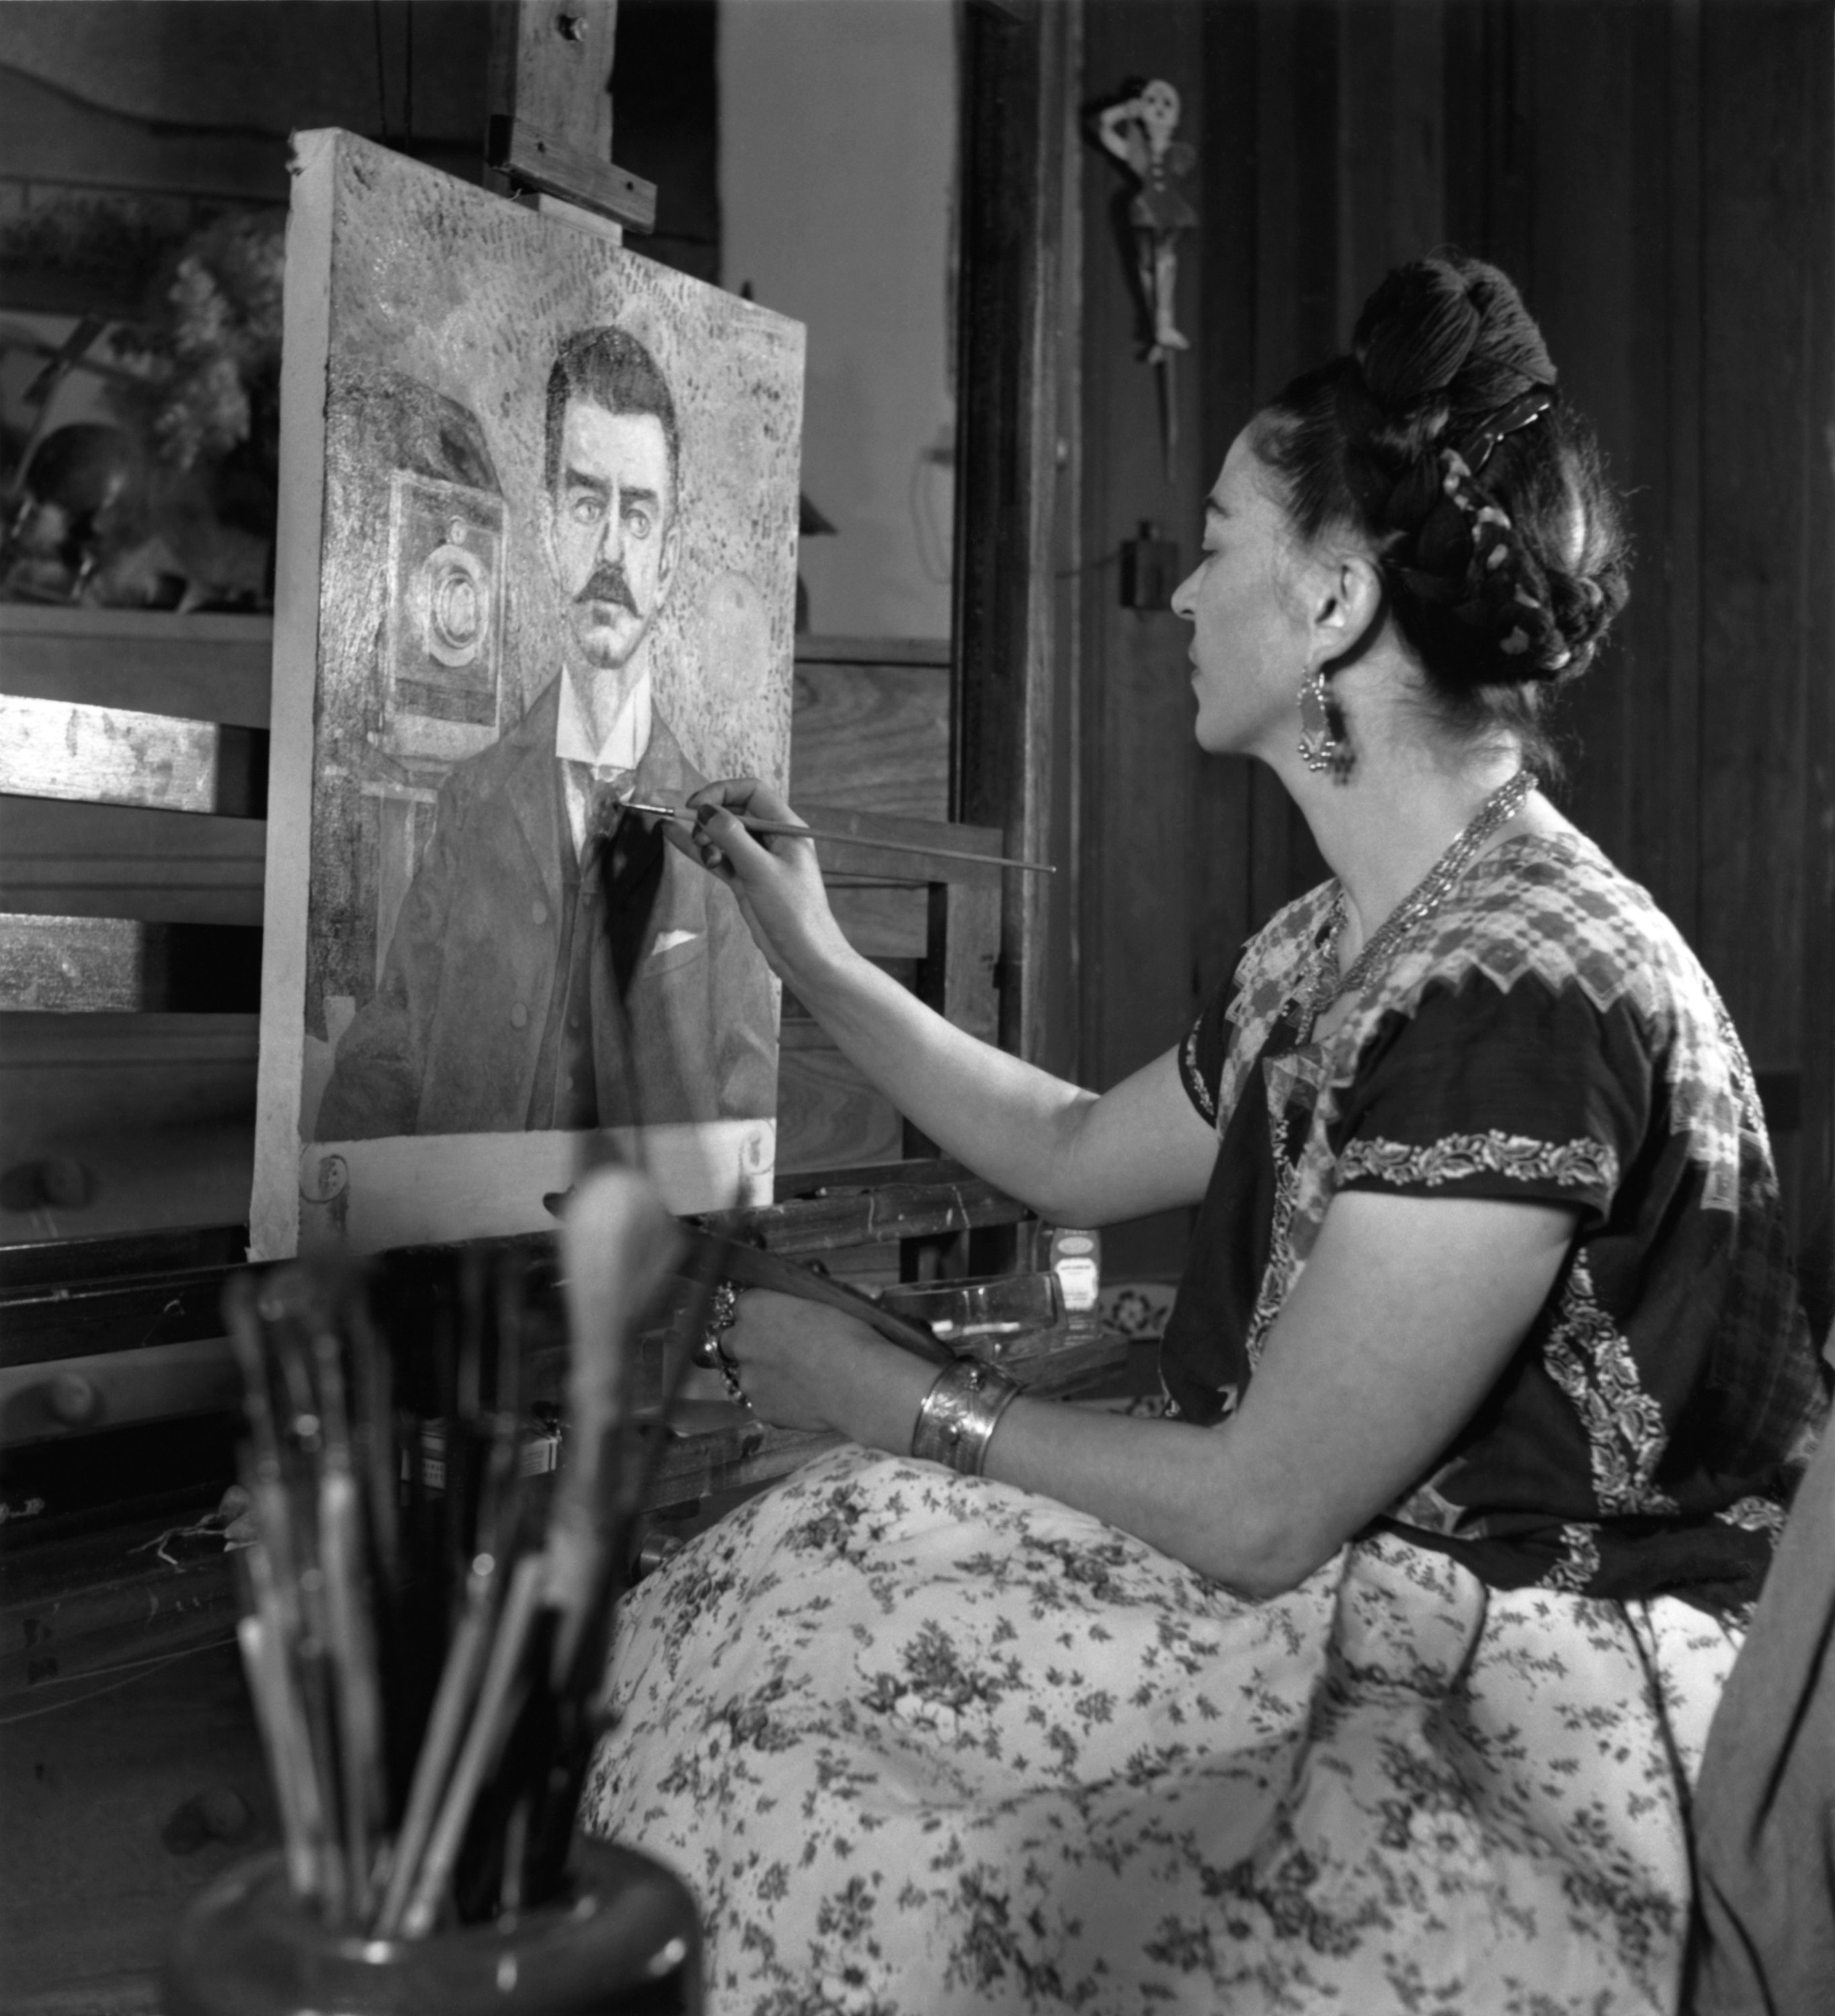 Mexican artist Frida Kahlo (1907-1954) as she paints her father's portrait, Mexico, 1952. (Getty Images)